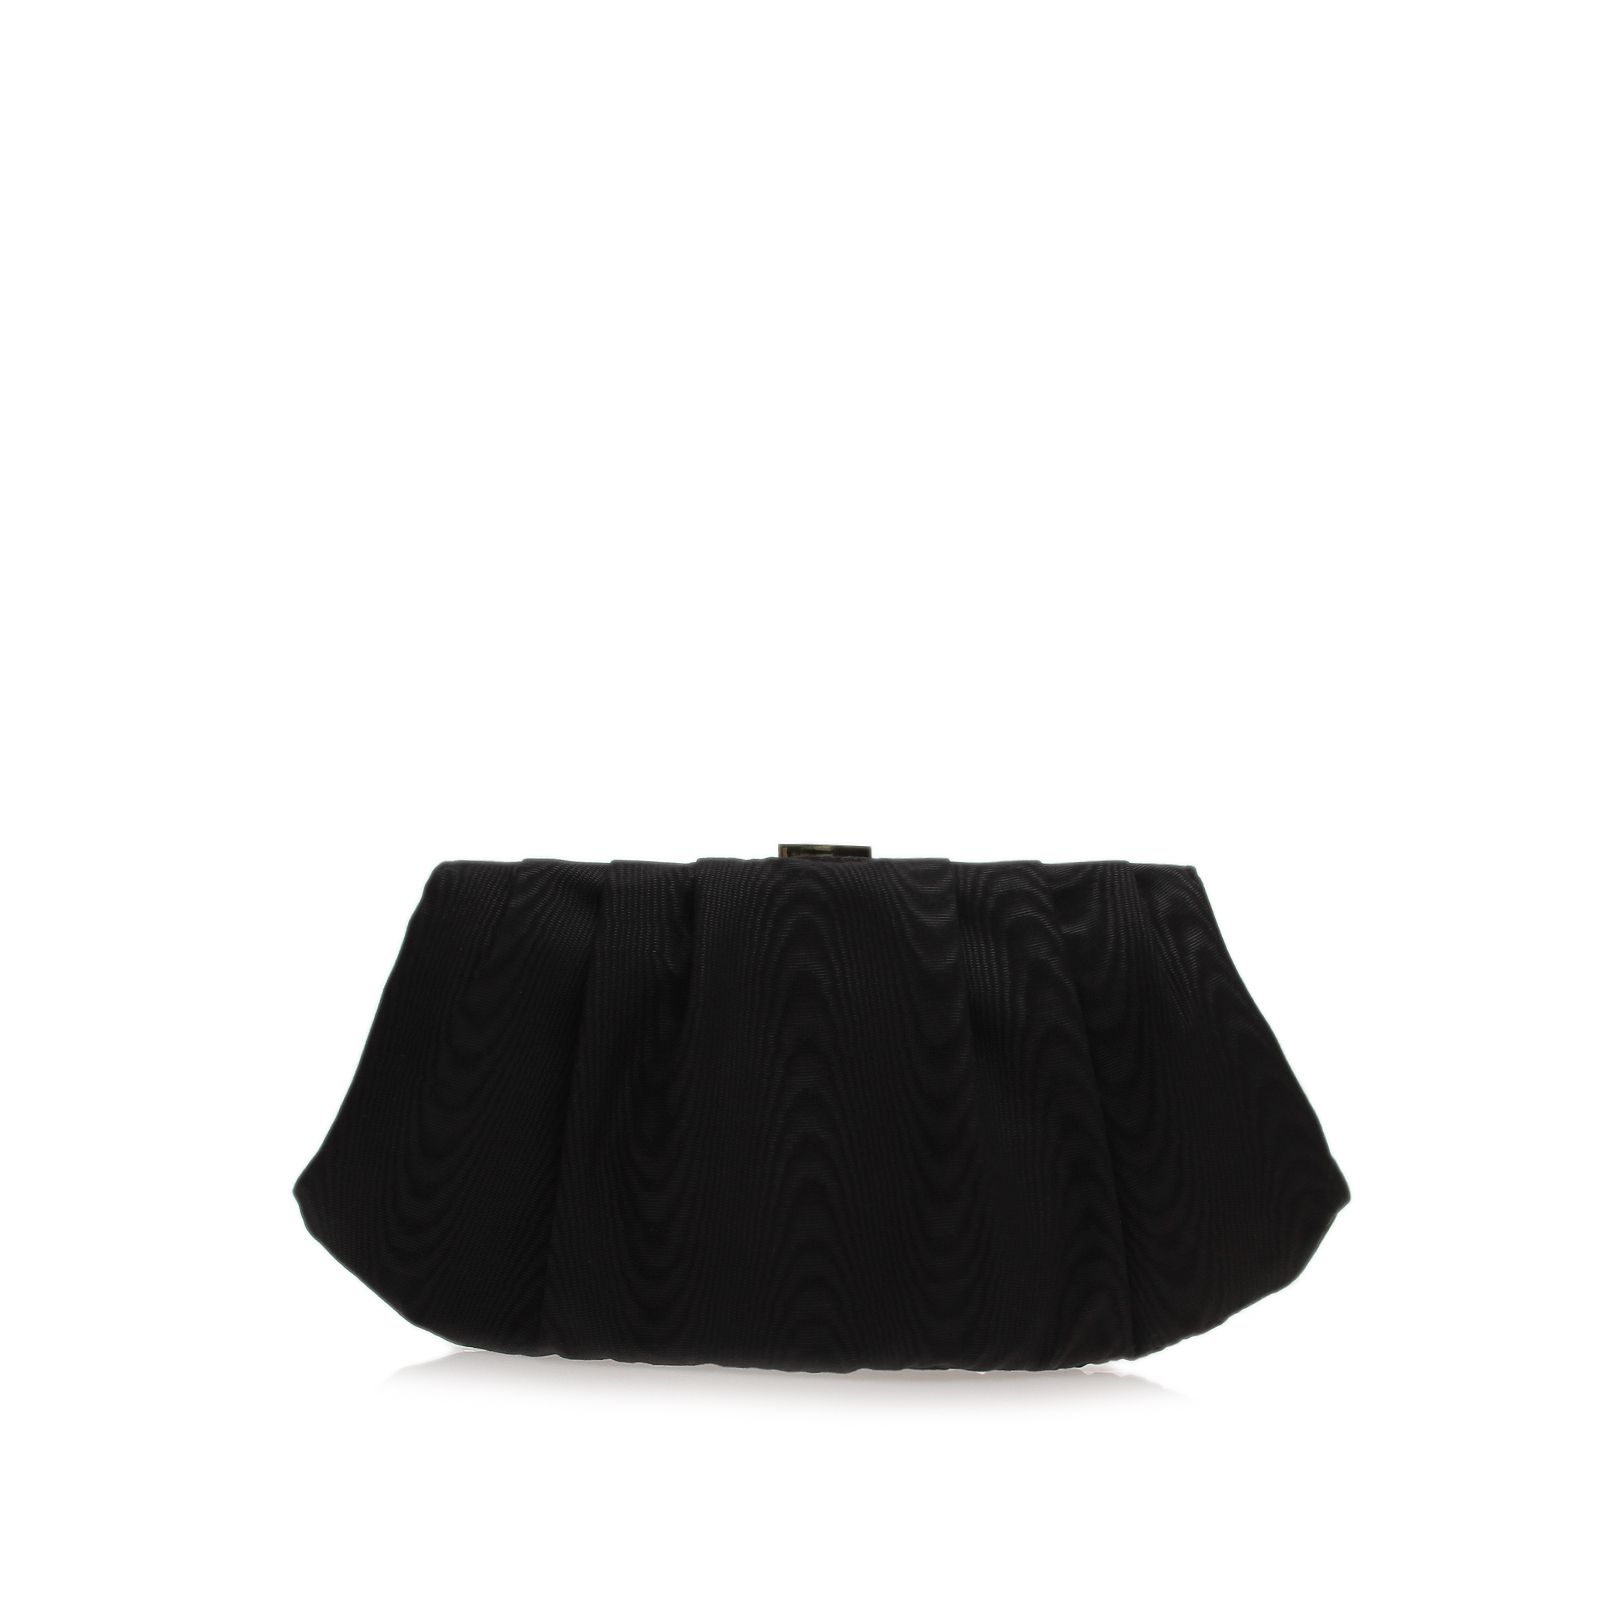 Bridal pleated black clutch